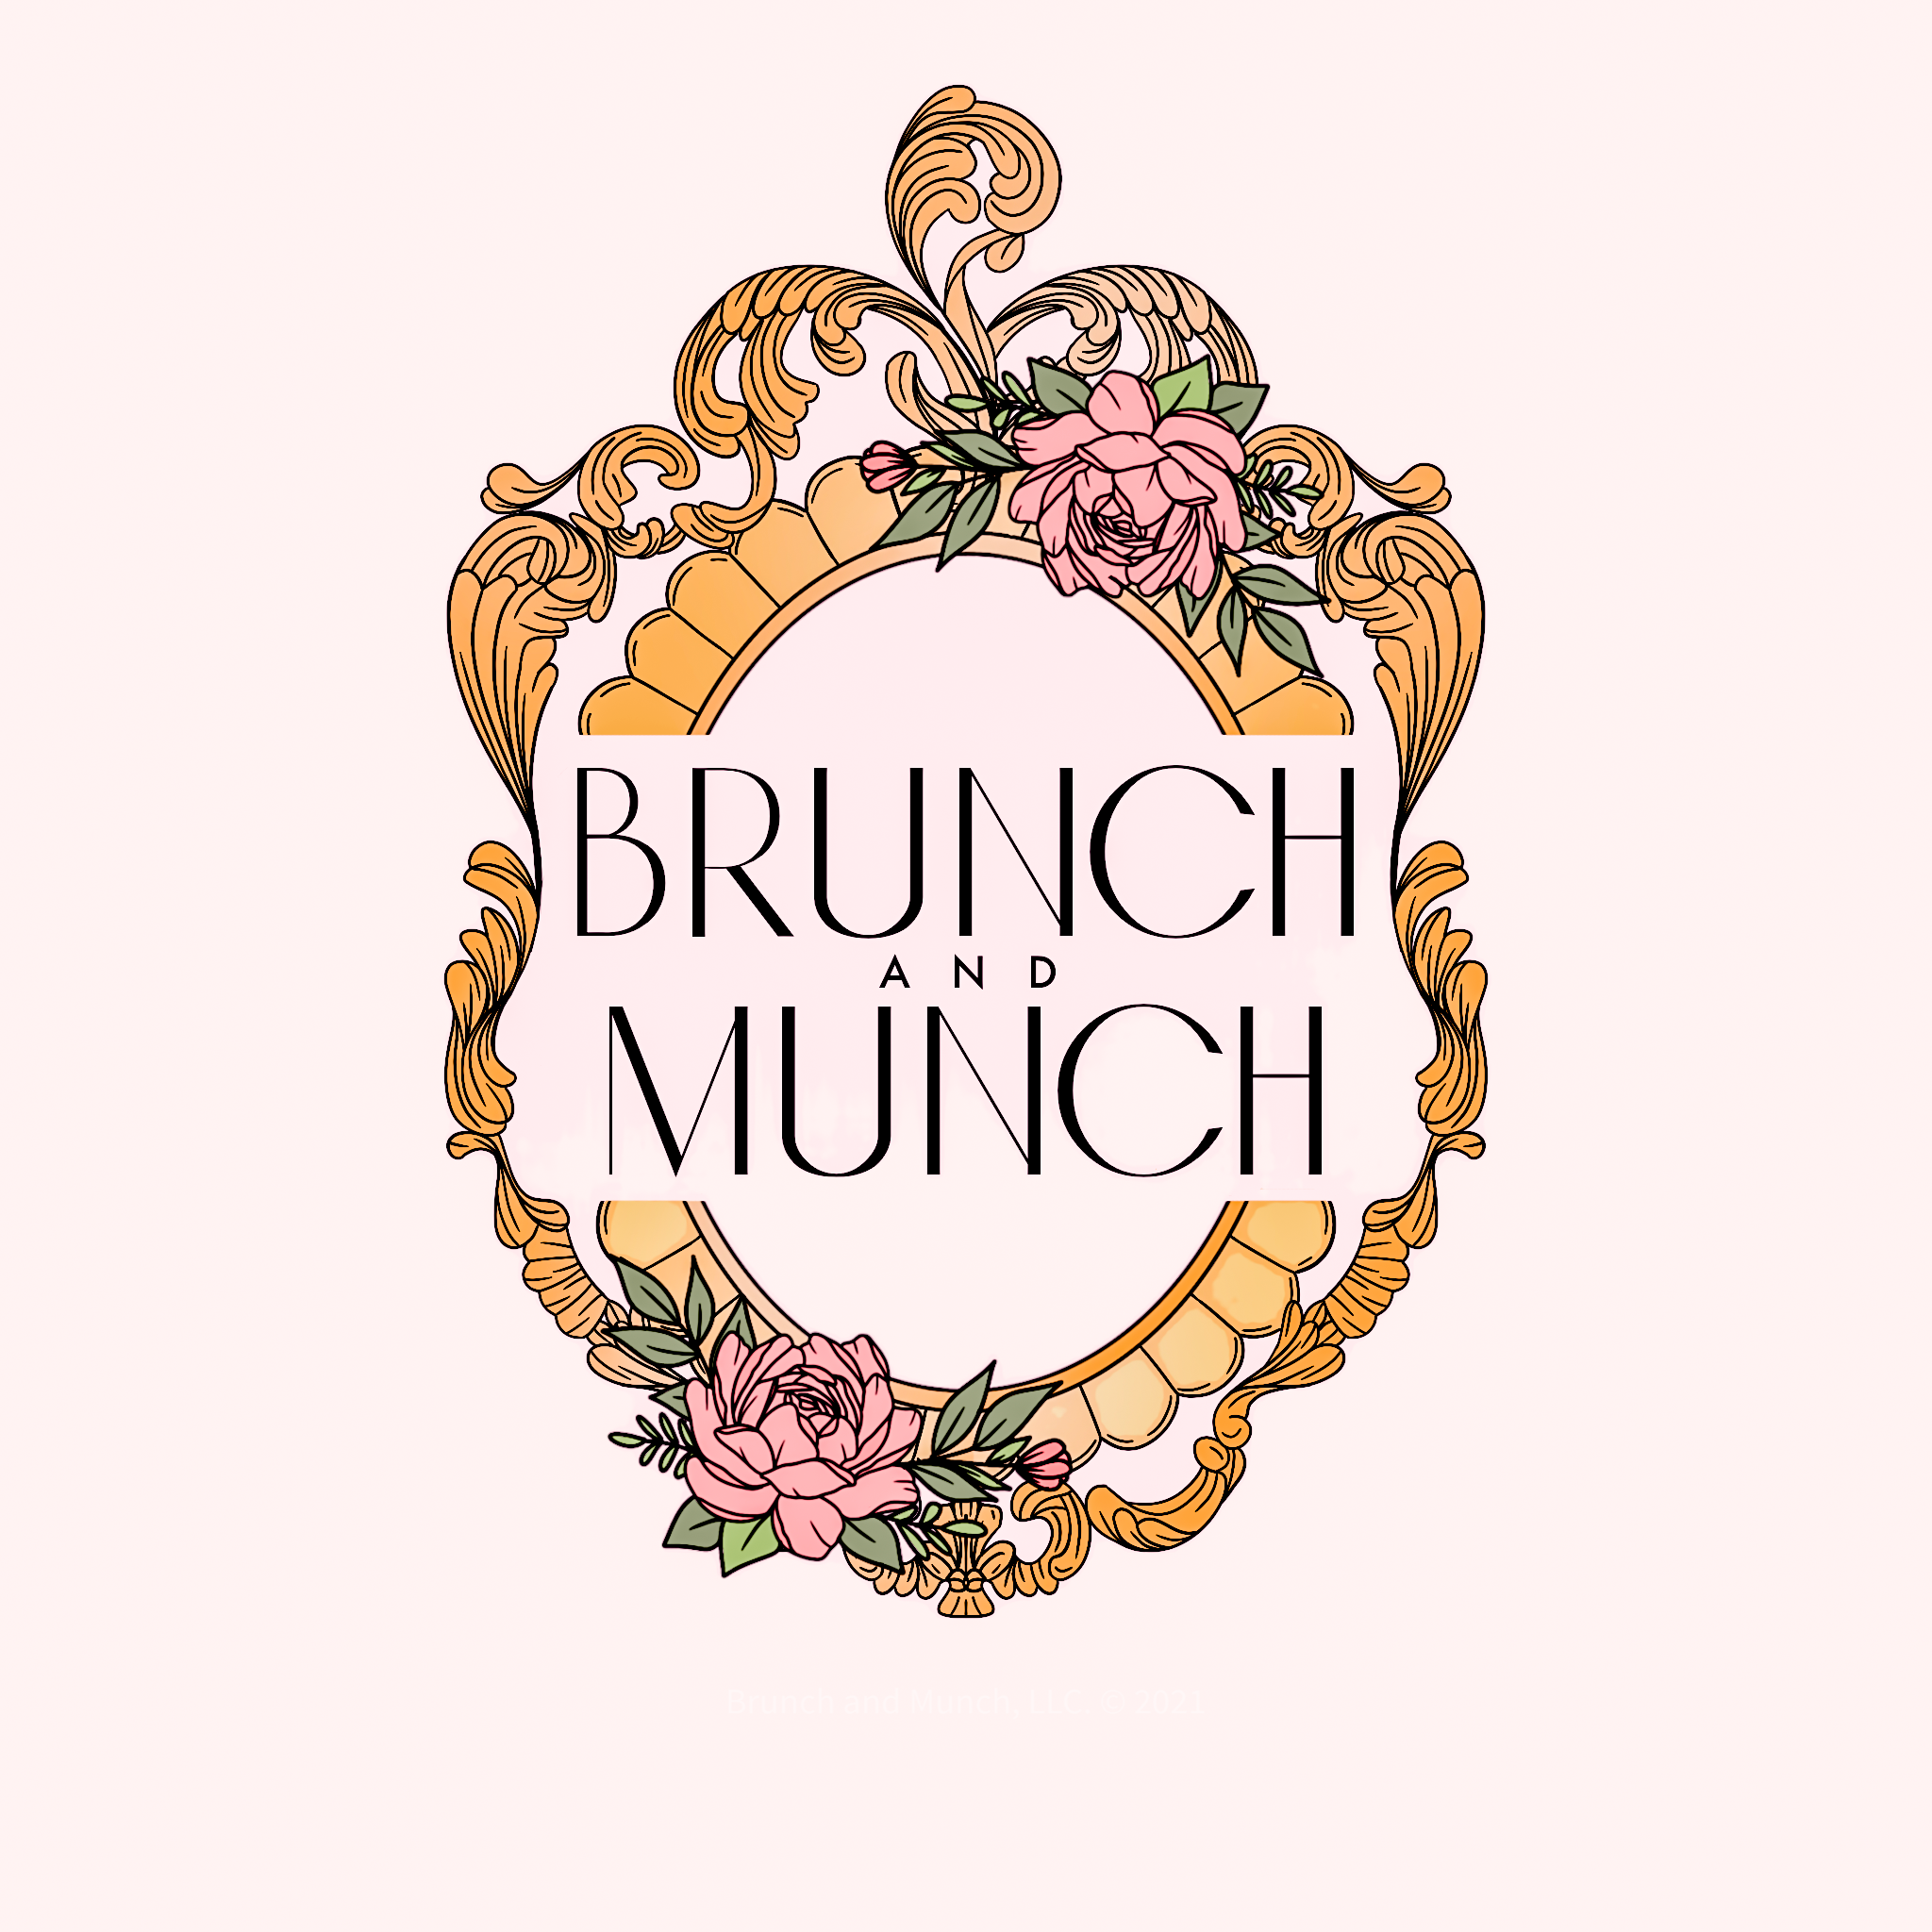 Brunch and Munch Eatery and Creperie Home